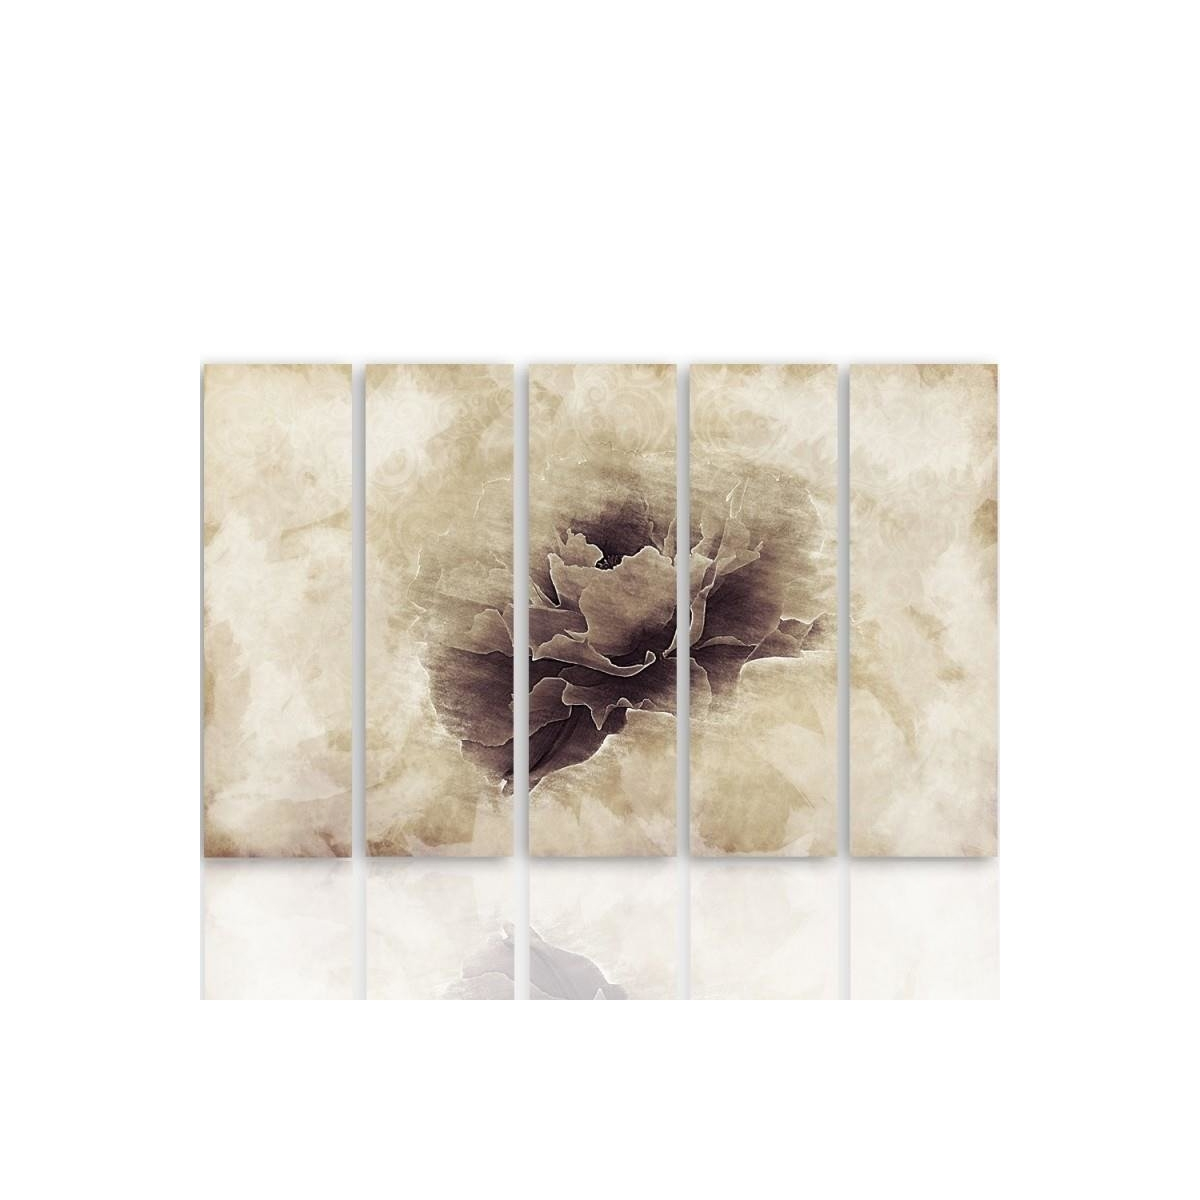 Five Part Picture On Canvas, Pentaptych, Type C, Gray Flower100x150